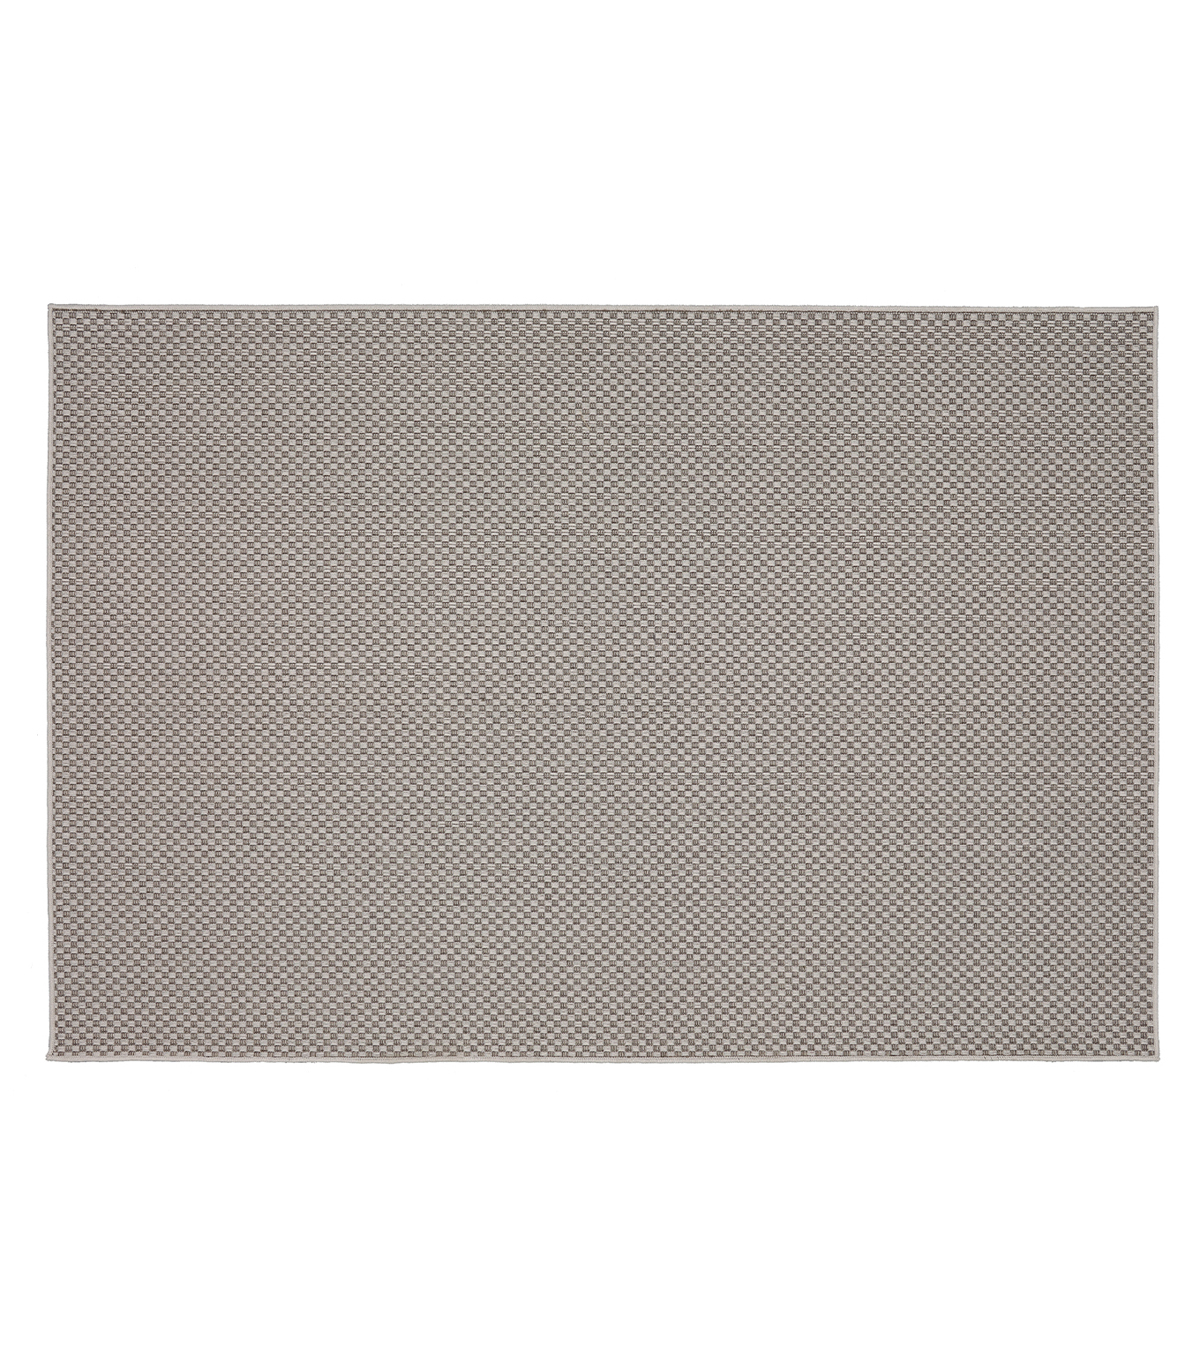 Mohawk Home Indoor & Outdoor Rug-Gray Grid Lines